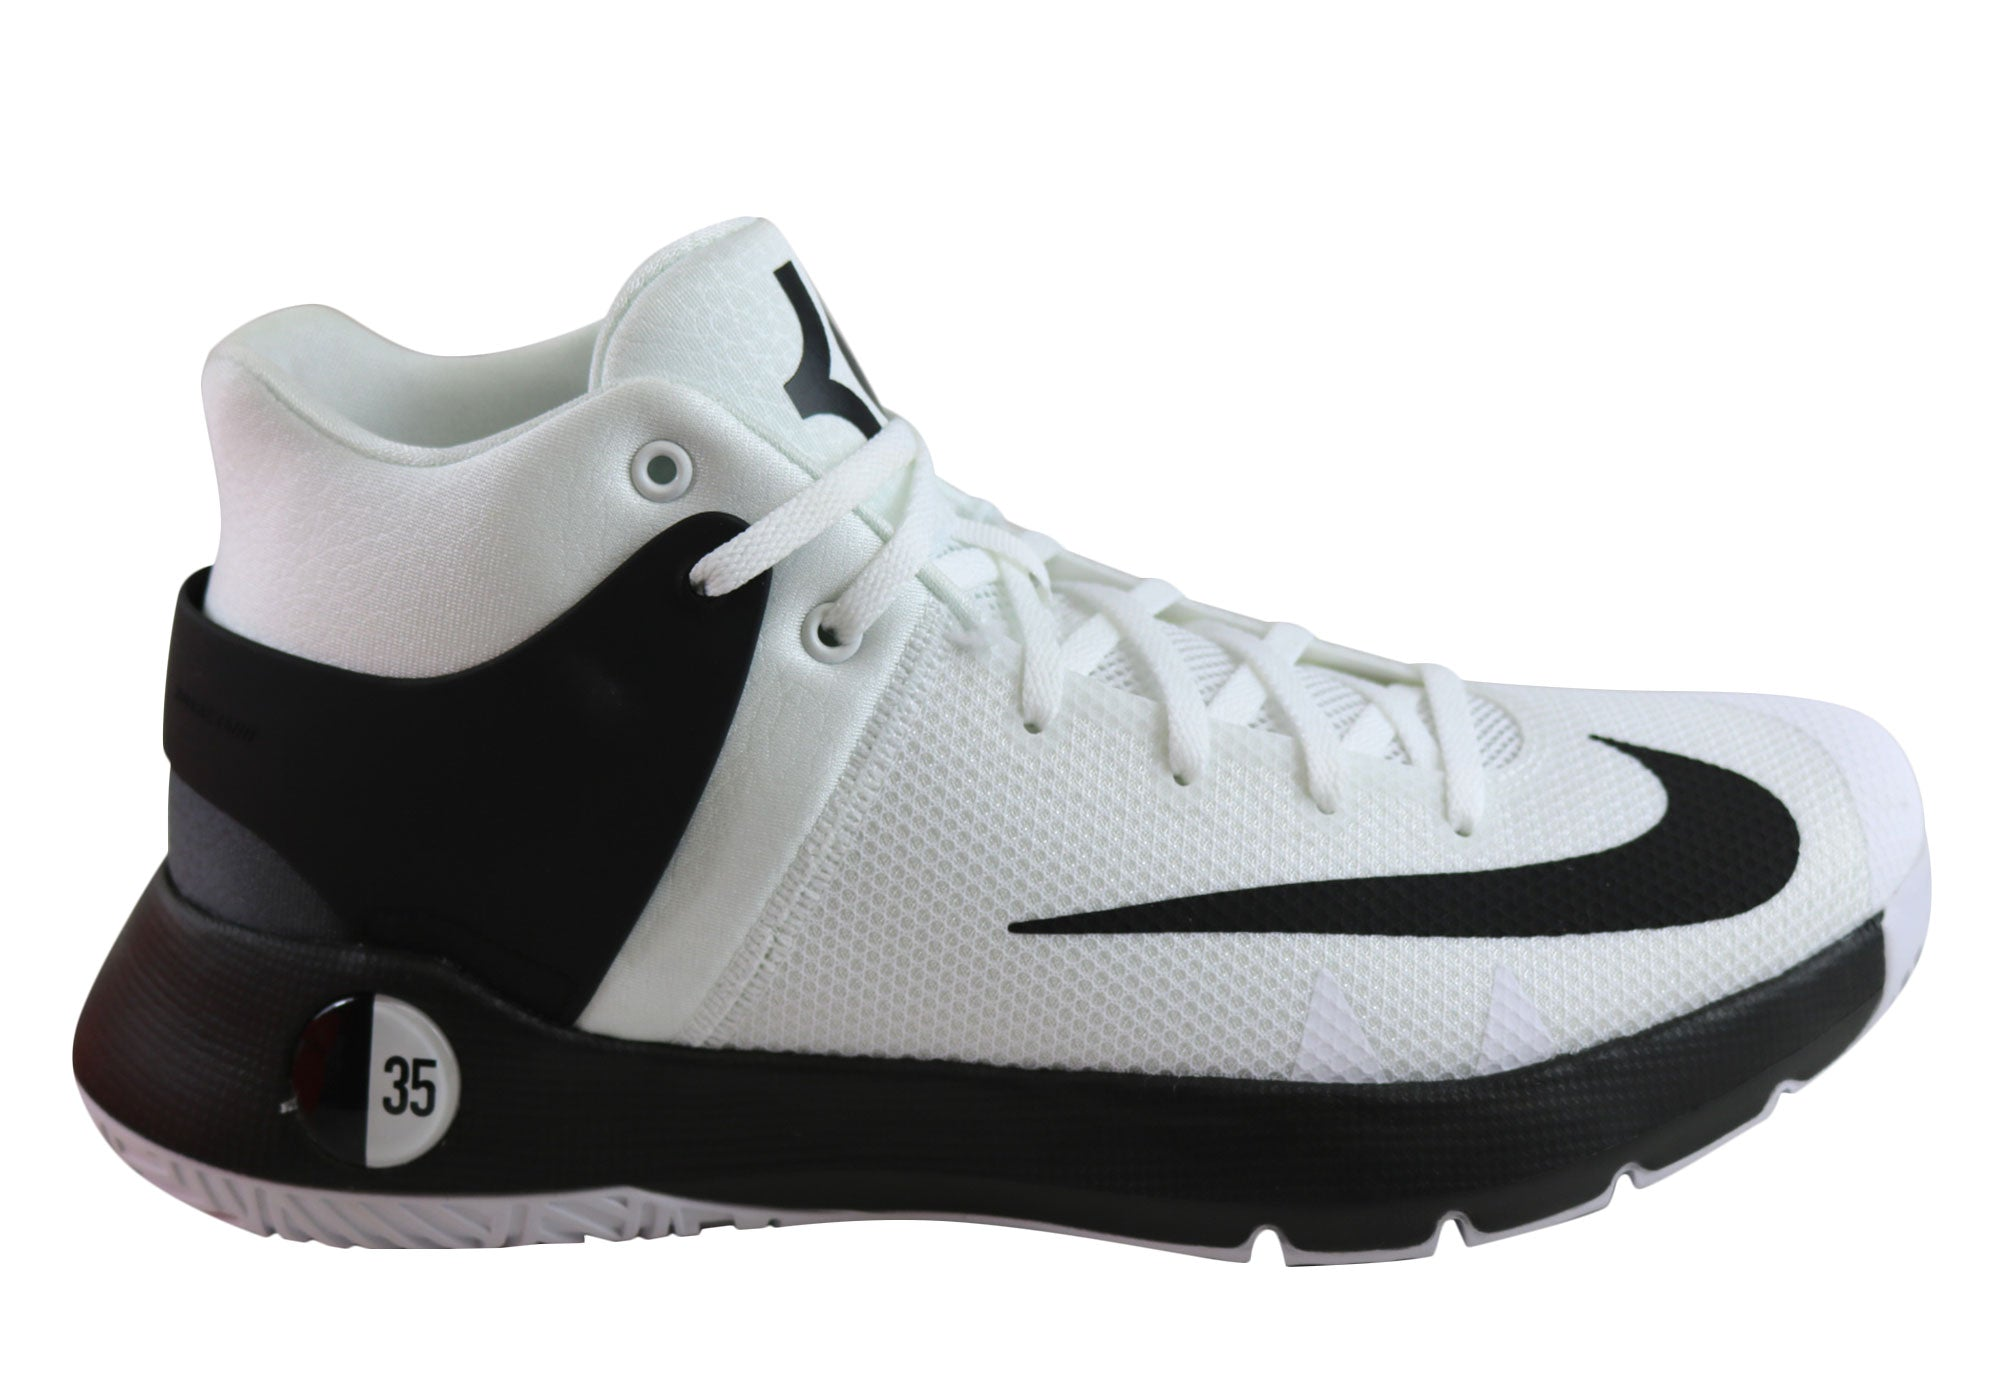 2bb99c05292 Home Nike Kd Trey 5 Iv Tb Mens Cushioned Kevin Durant Basketball Shoes.  White Black ...